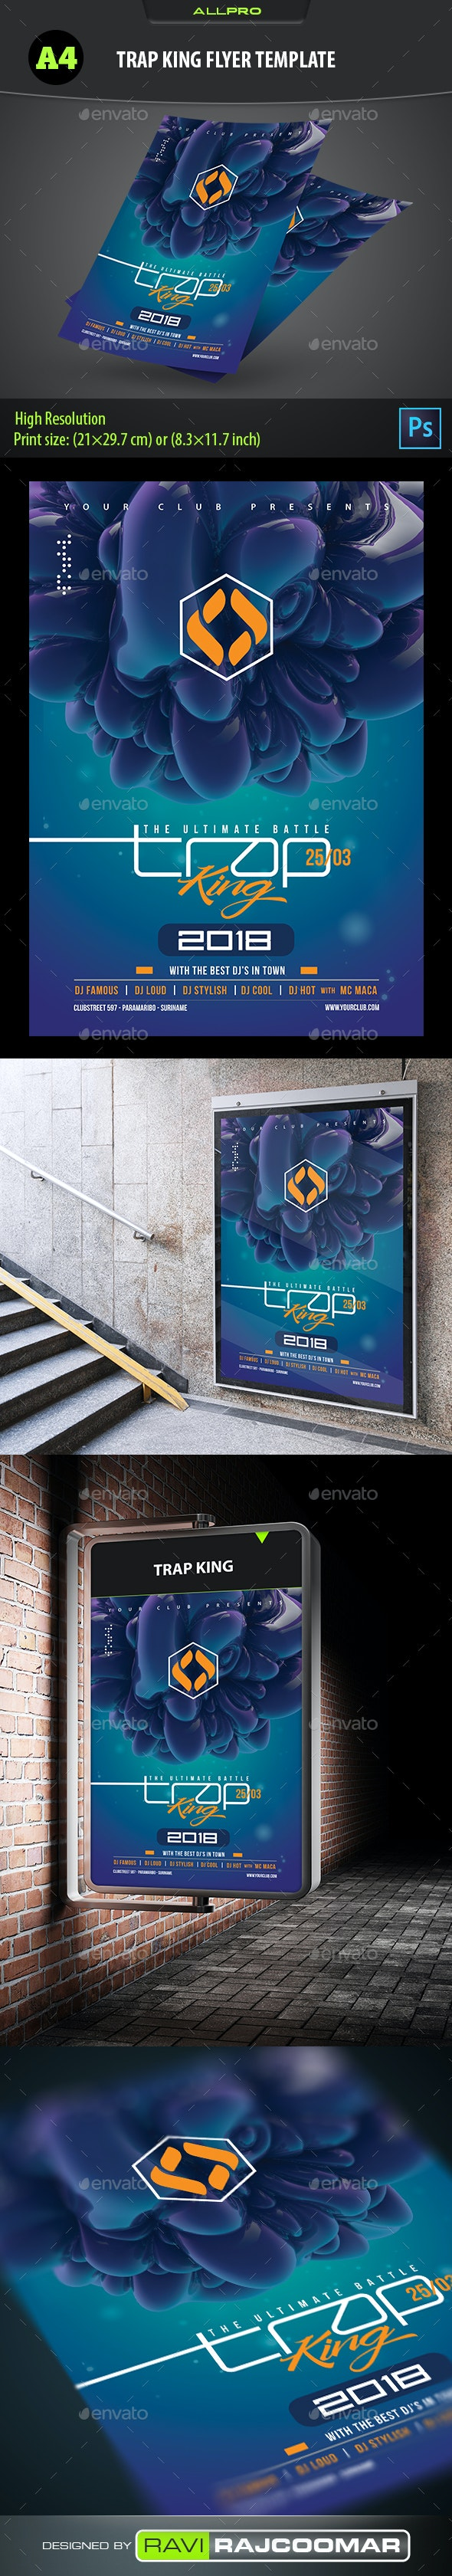 Trap King Flyer Template - Clubs & Parties Events